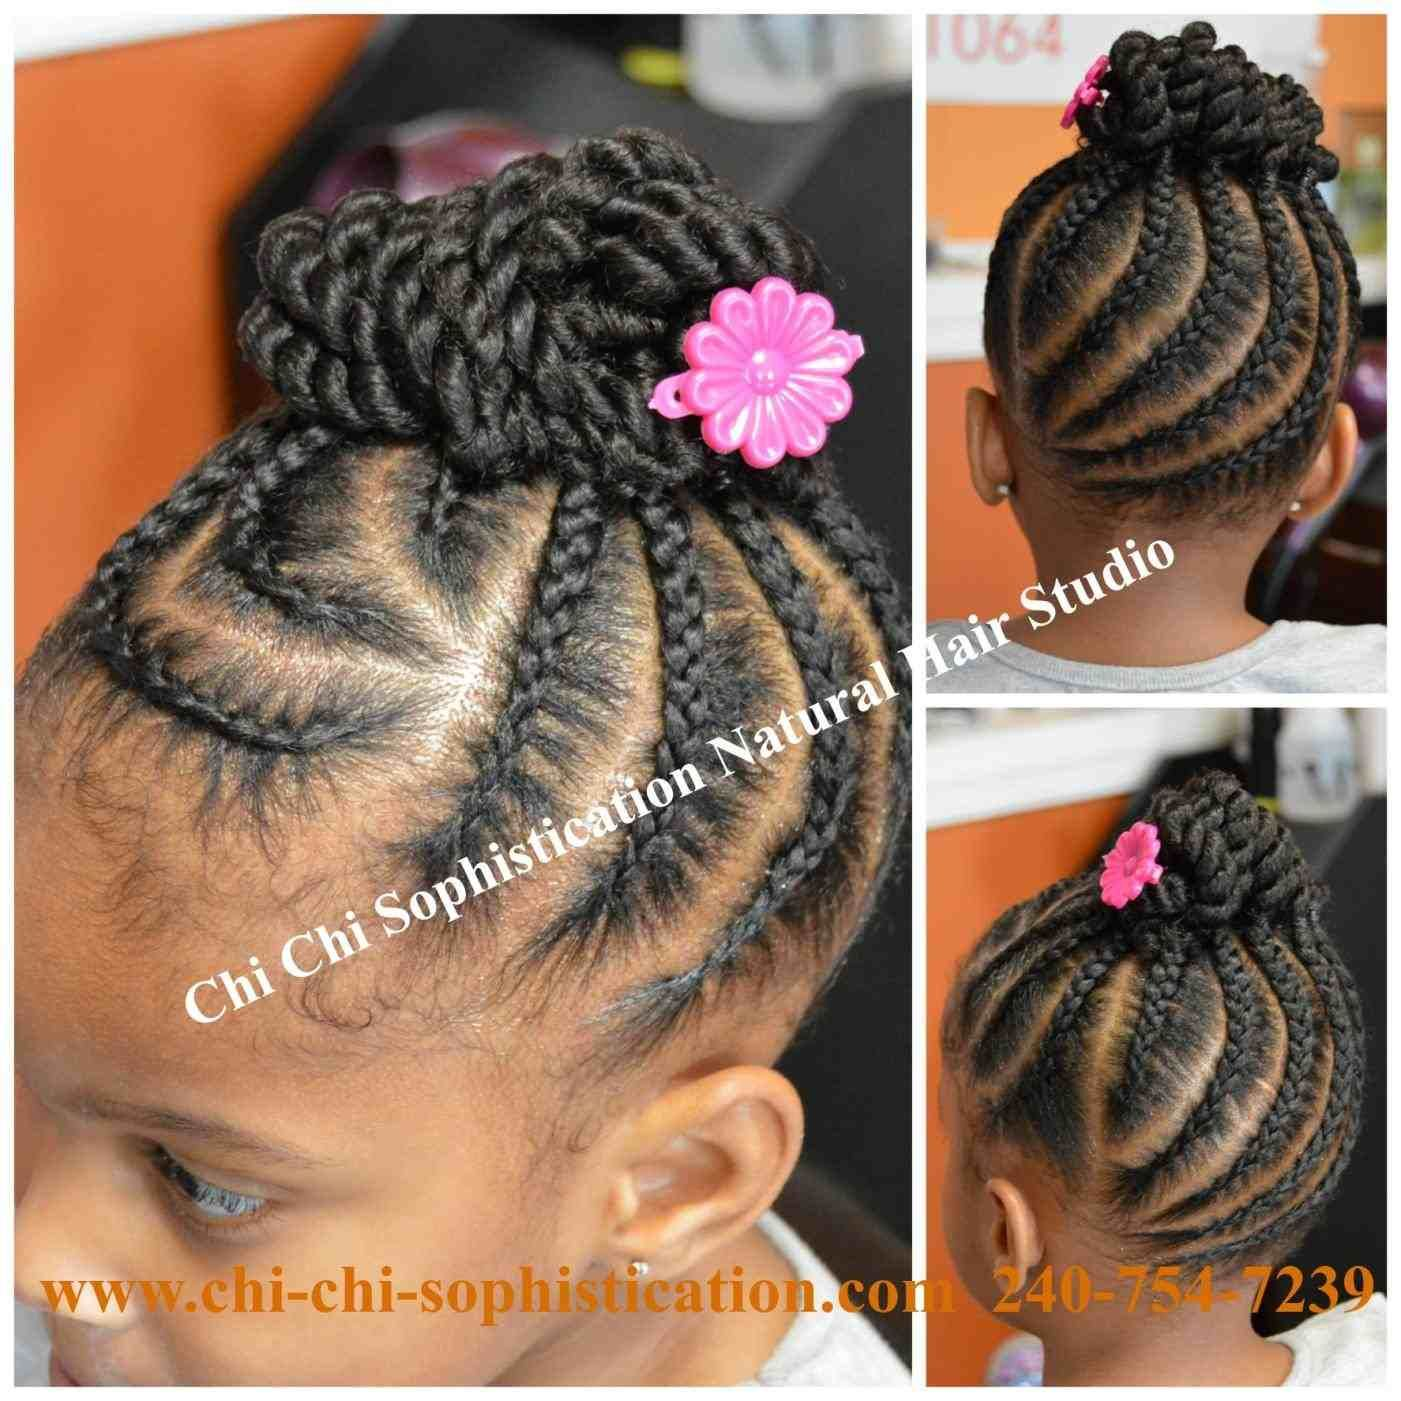 Cornrow Hairstyles For School Children Hair Stylist And